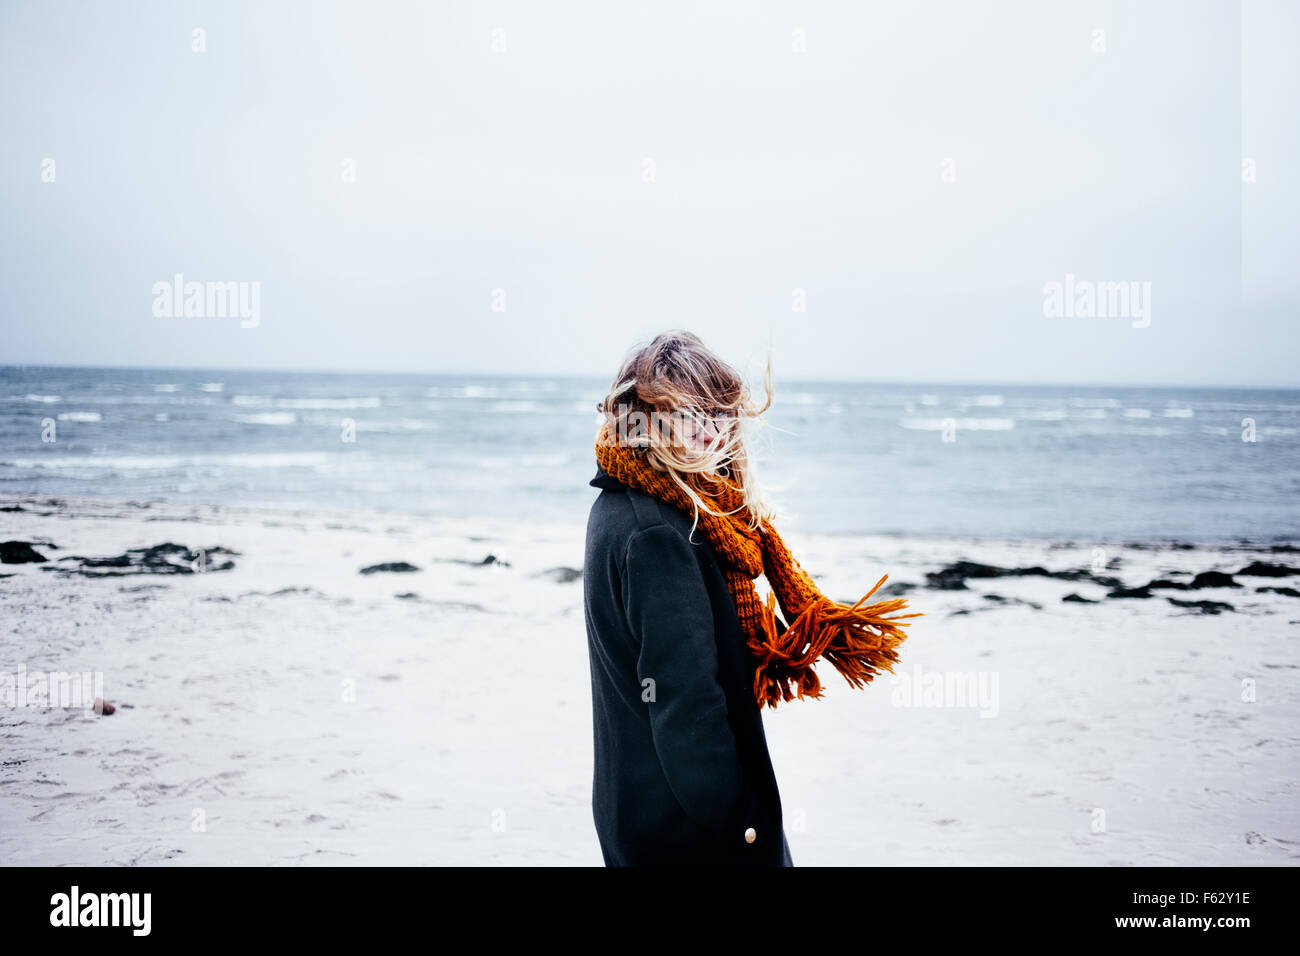 Side view portrait of young woman wearing scarf at beach - Stock Image